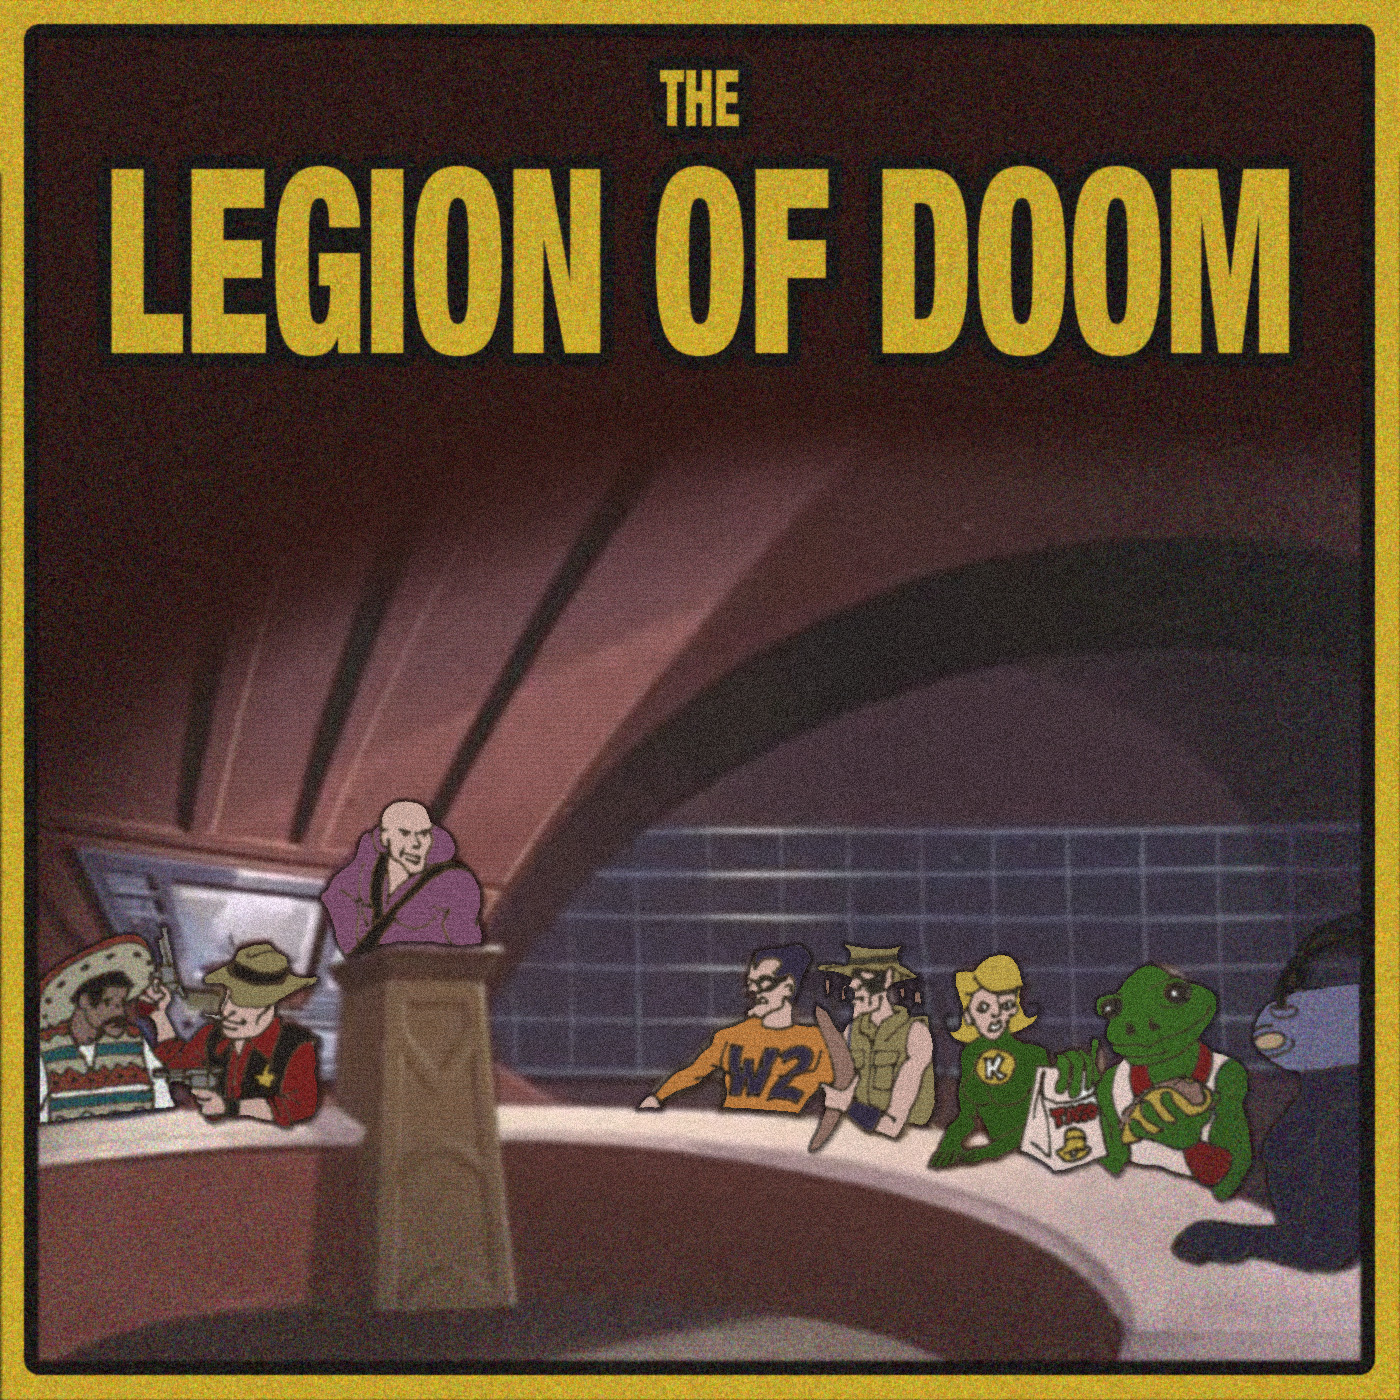 the legion of doom essay The stable was short lived and the name legion of doom soon referred only to the road warriors and ellering with either name the road warriors / legion of doom.